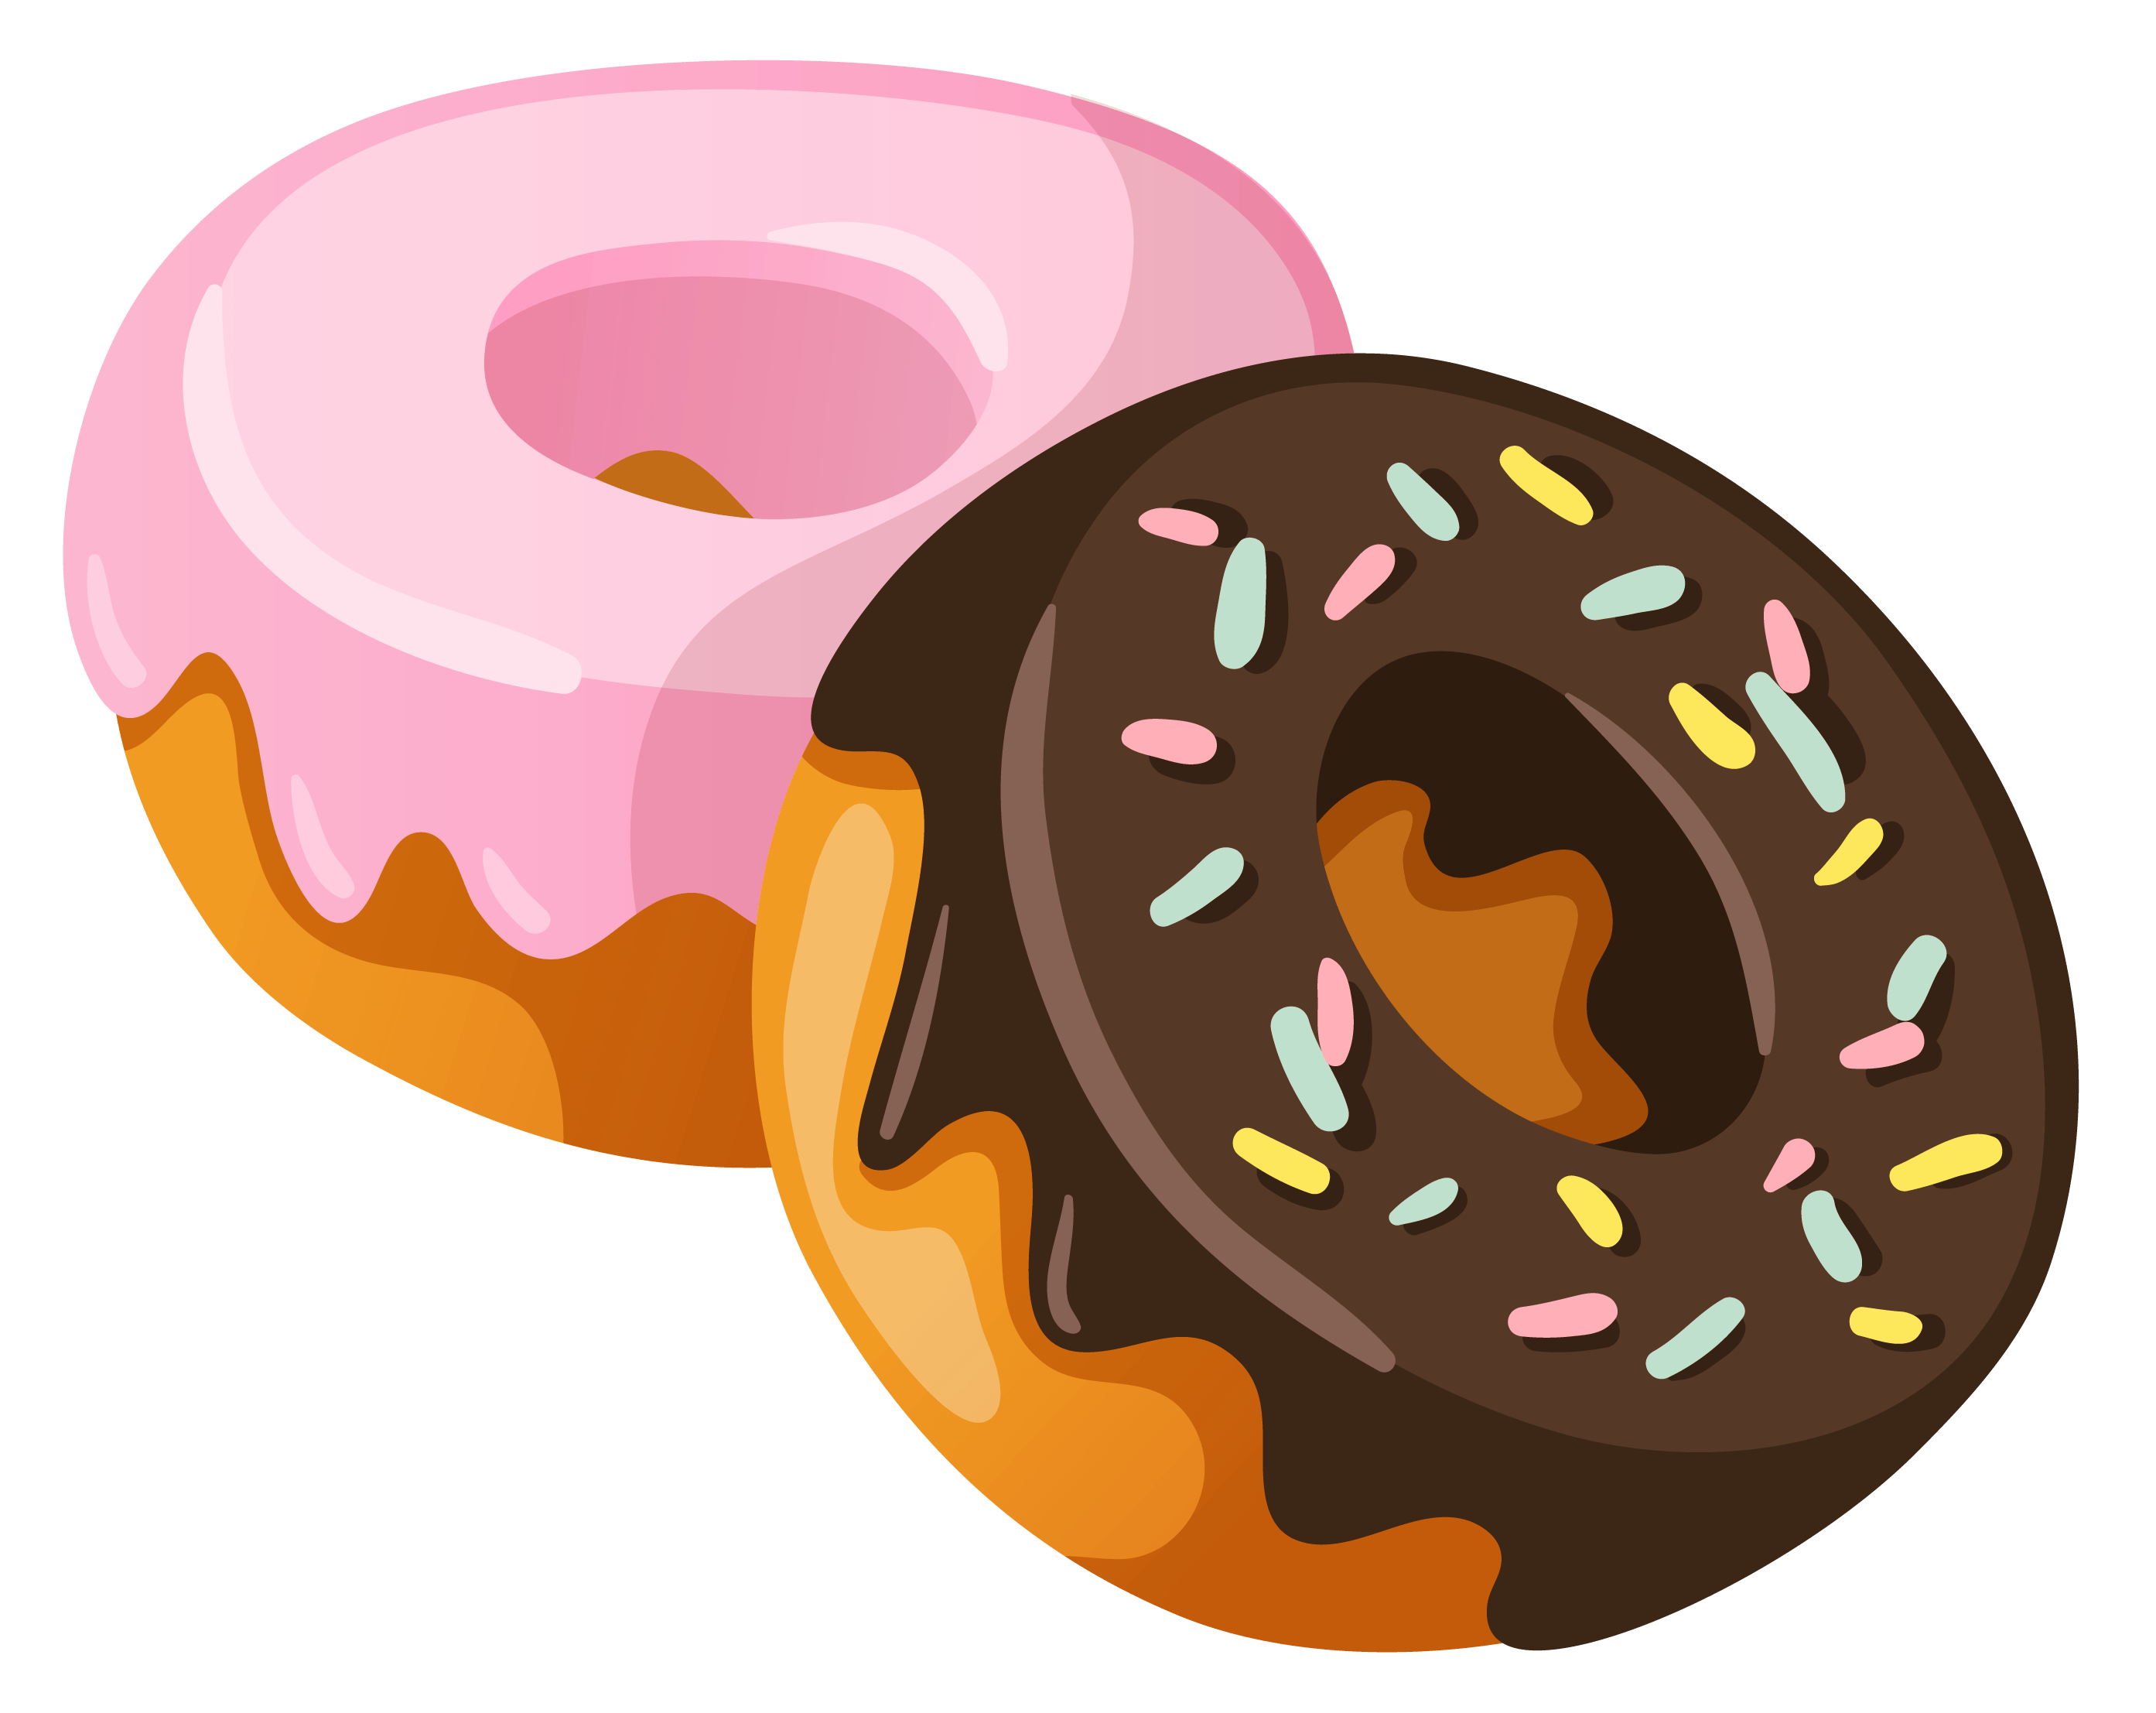 Donuts png stickpng food. 2 clipart transparent background